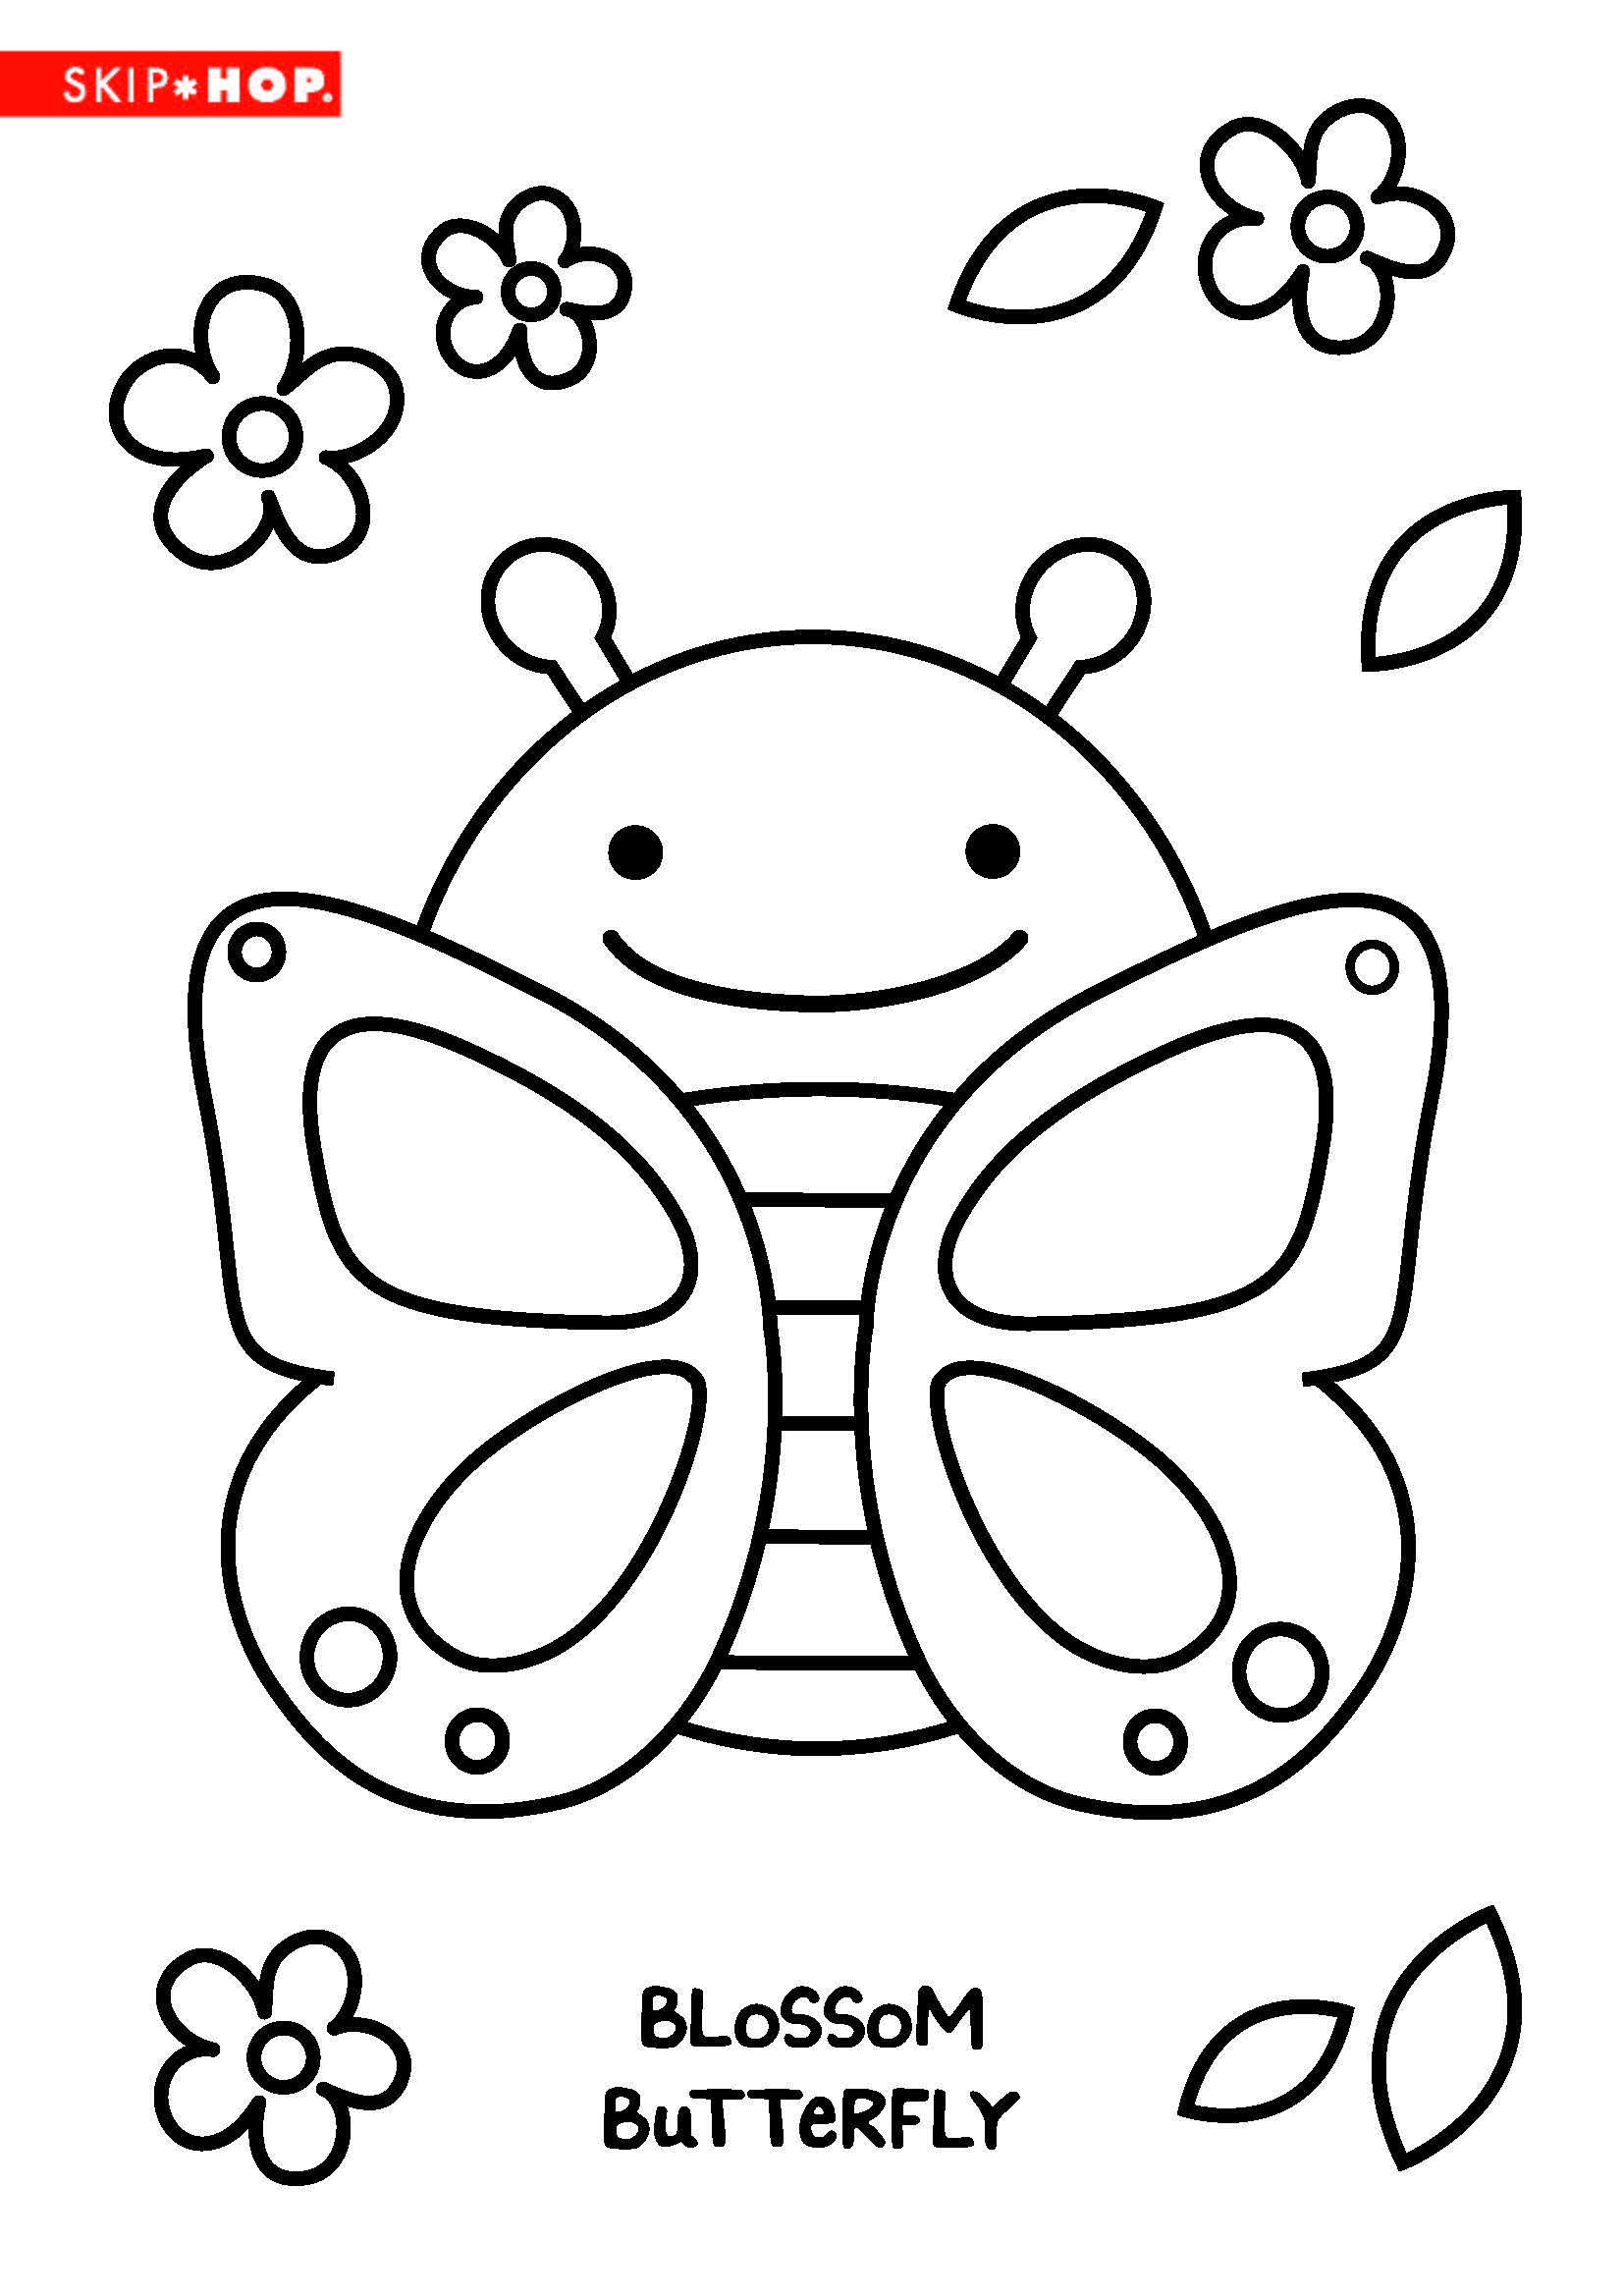 Blossom Butterfly Coloring Sheet Kids Coloring Books Activity Sheets For Kids Coloring Sheets For Kids